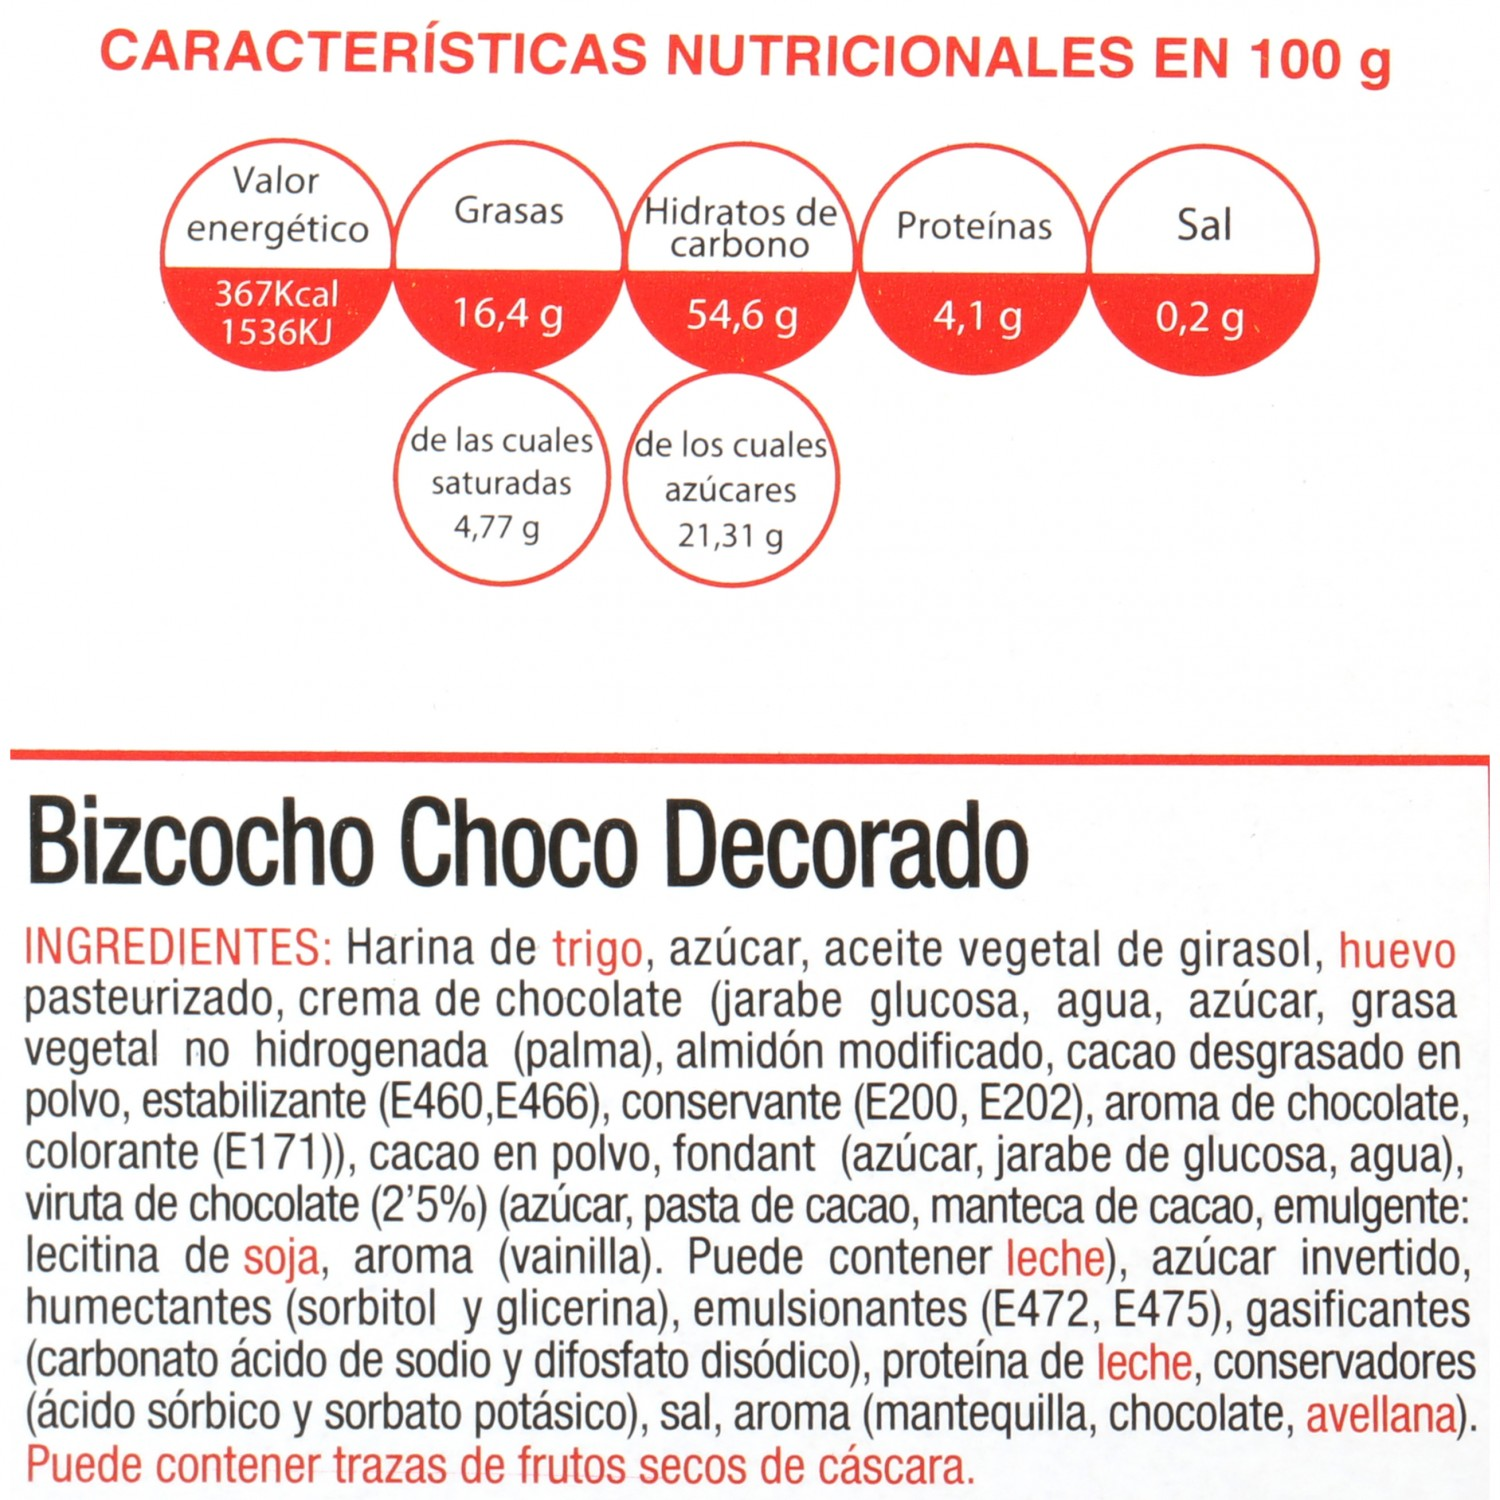 Bizcocho chocolate decorado Dillepasa 400 g - 3